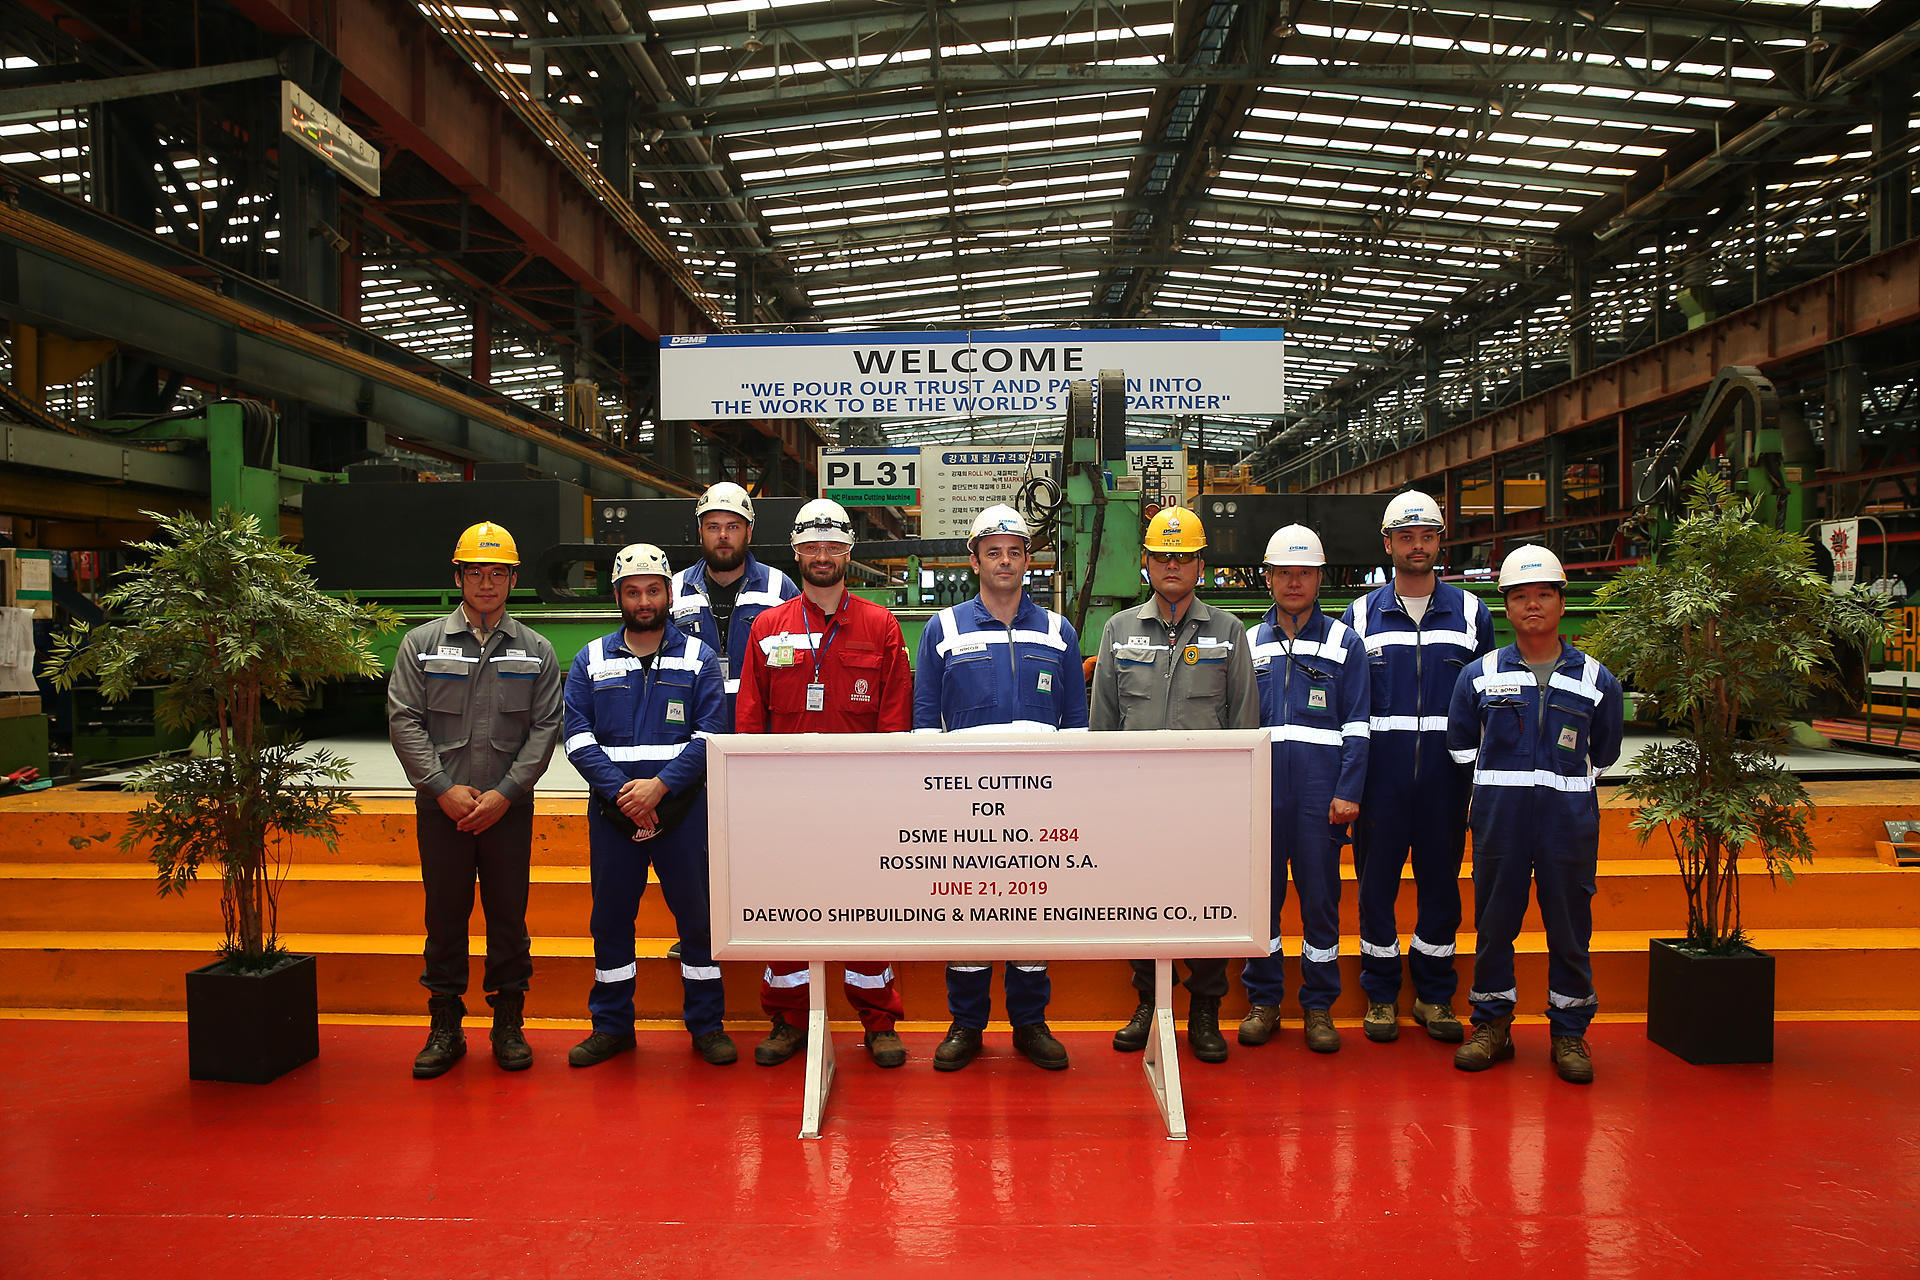 Steel Cutting event for H2484